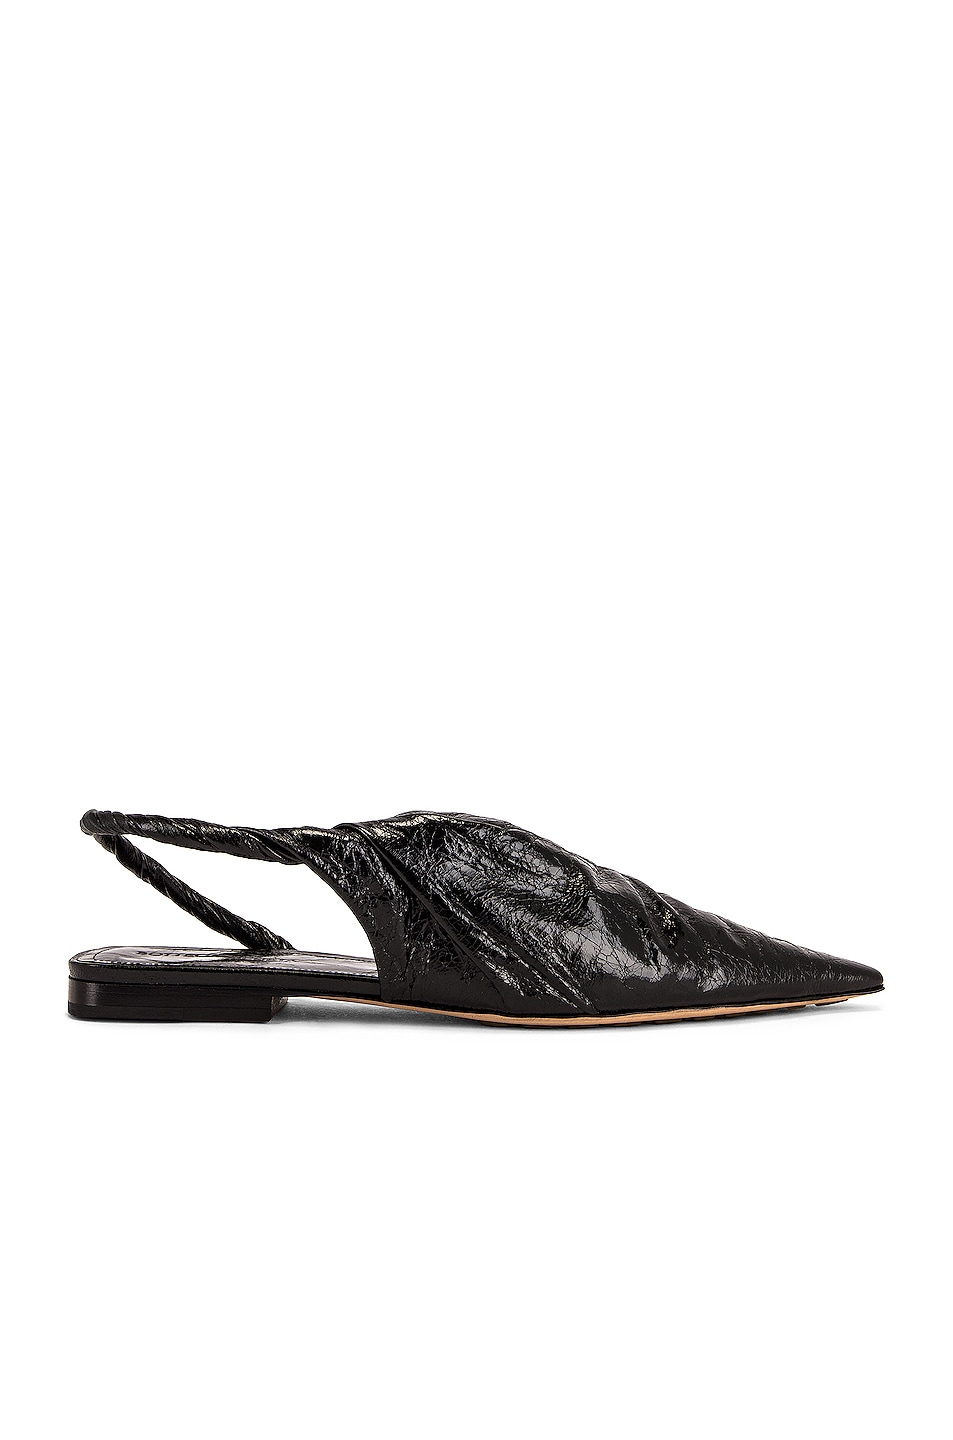 Image 1 of Bottega Veneta The Point Flats in Black